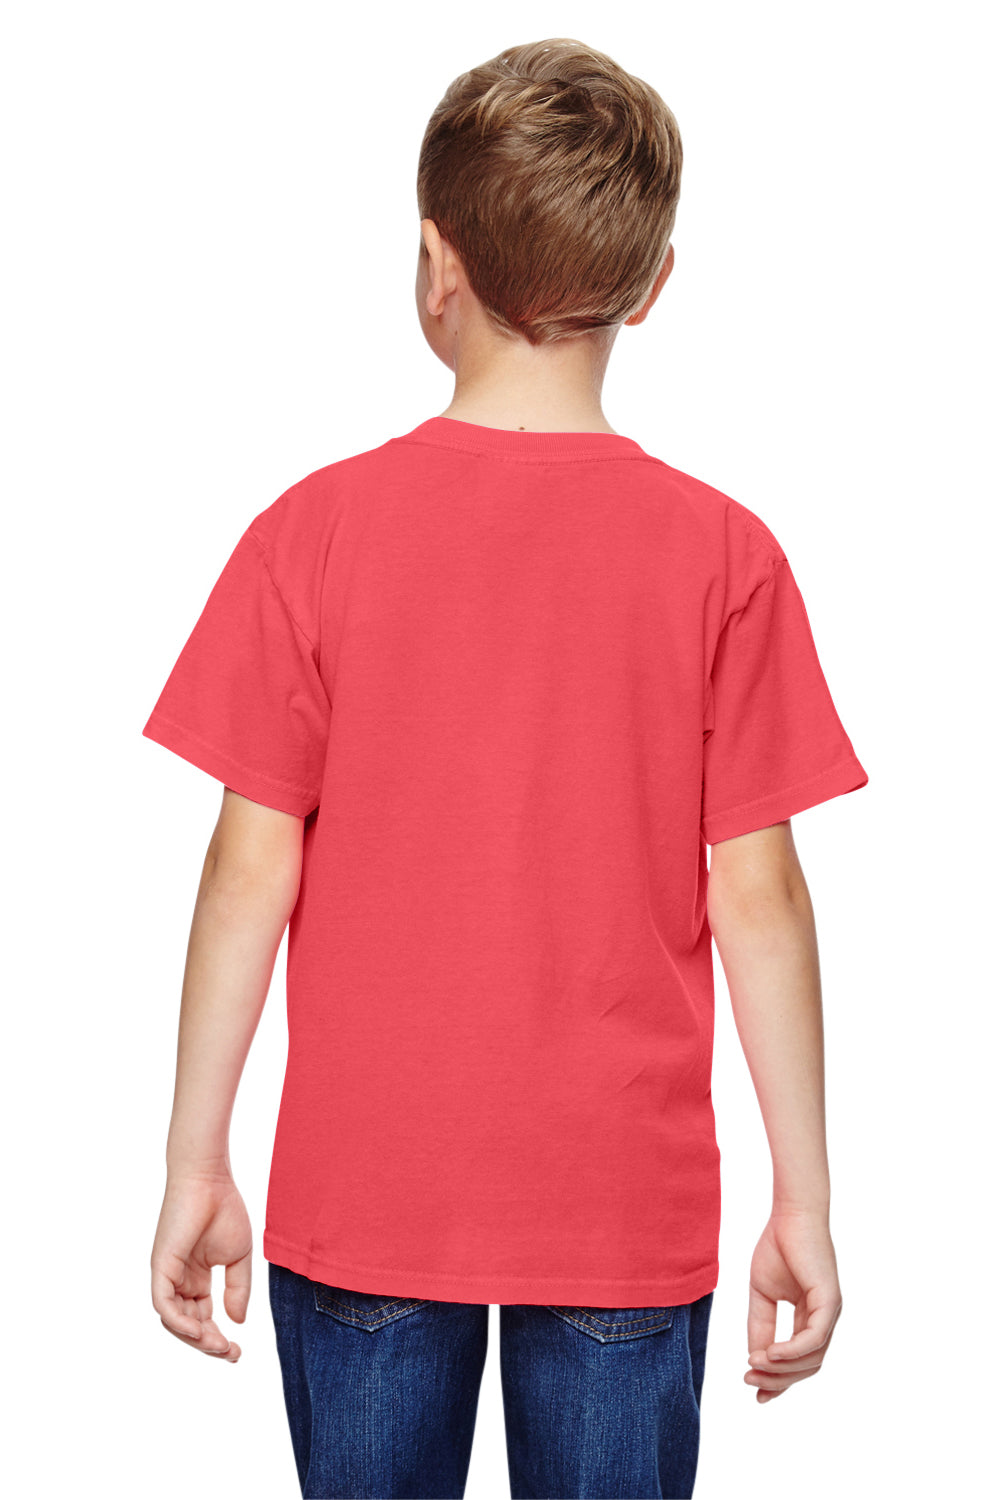 Comfort Colors C9018 Youth Short Sleeve Crewneck T-Shirt Neon Red Orange Back